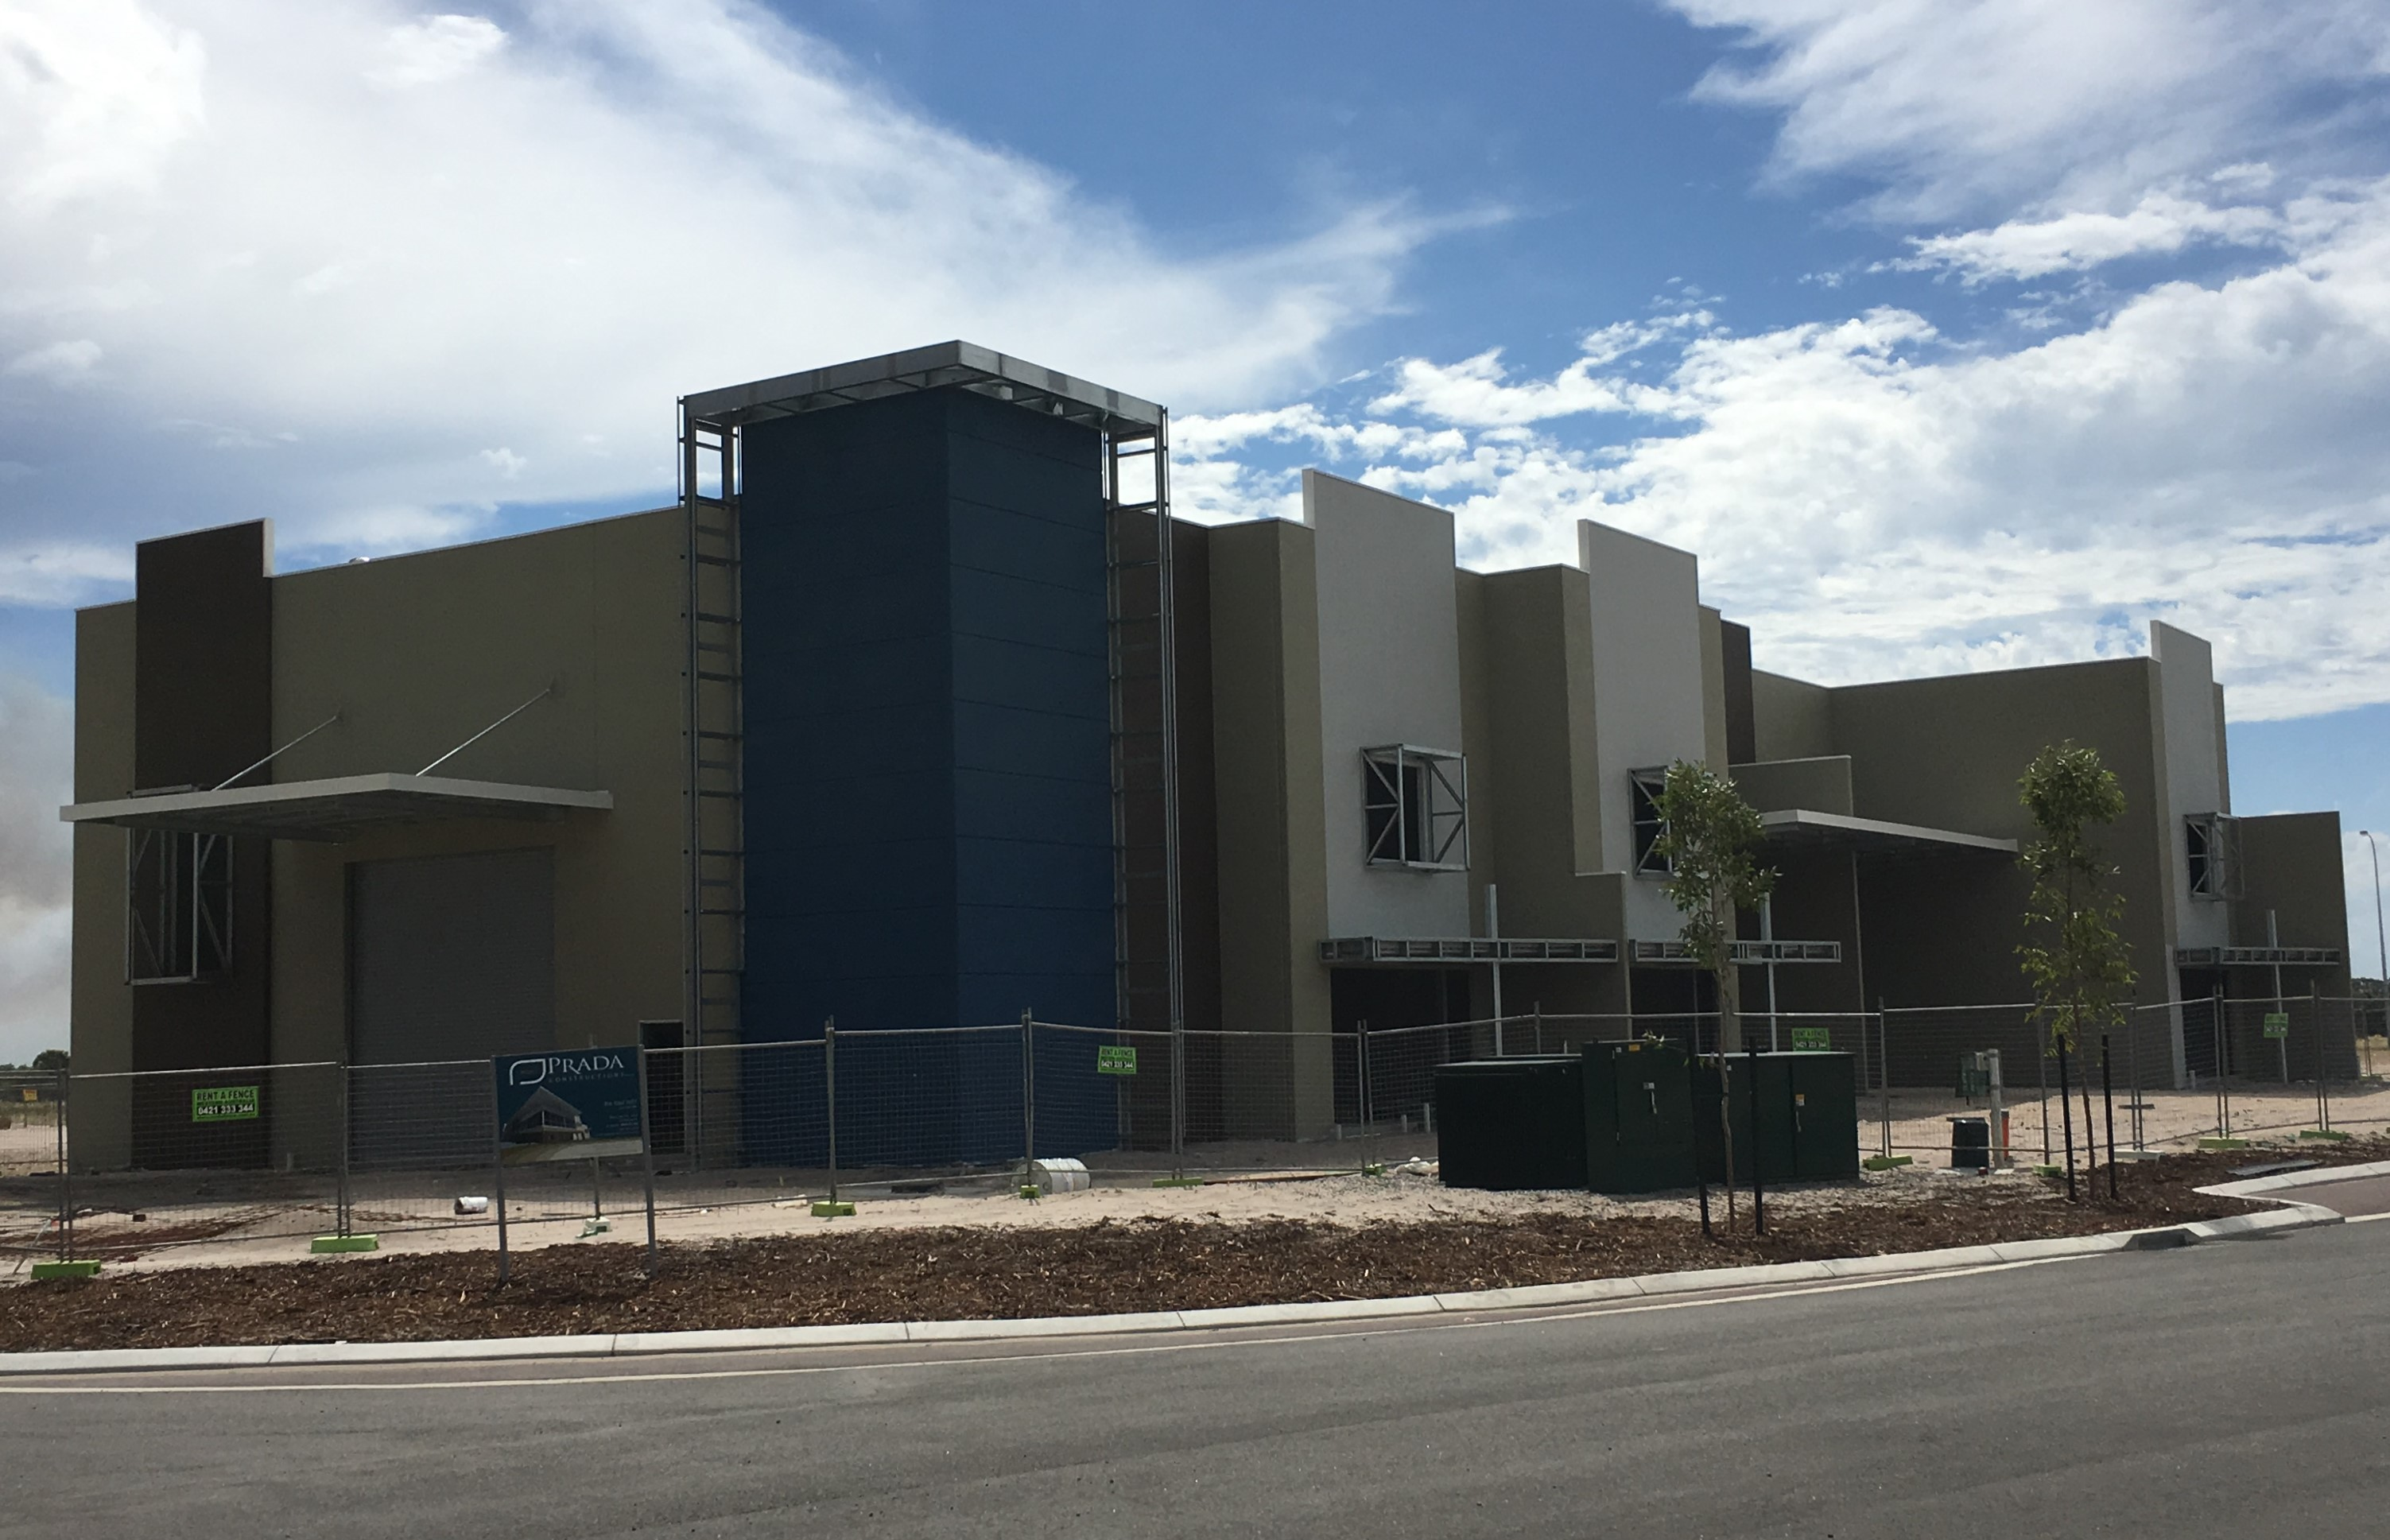 Exterior shot of large industrial warehouse/office painted in grey with blue accents